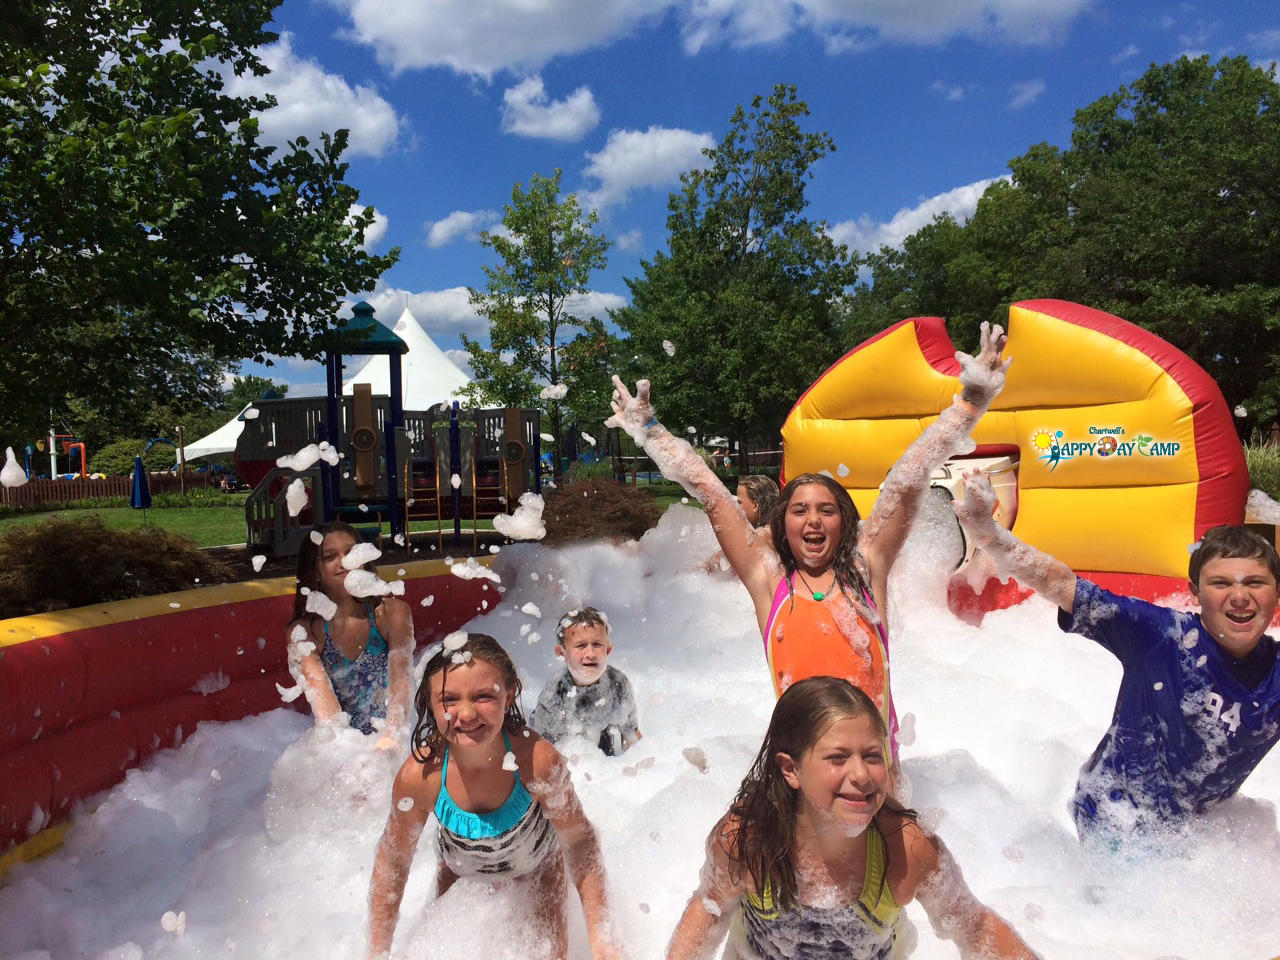 Chartwell's Happy Day Camp Marlton image 35